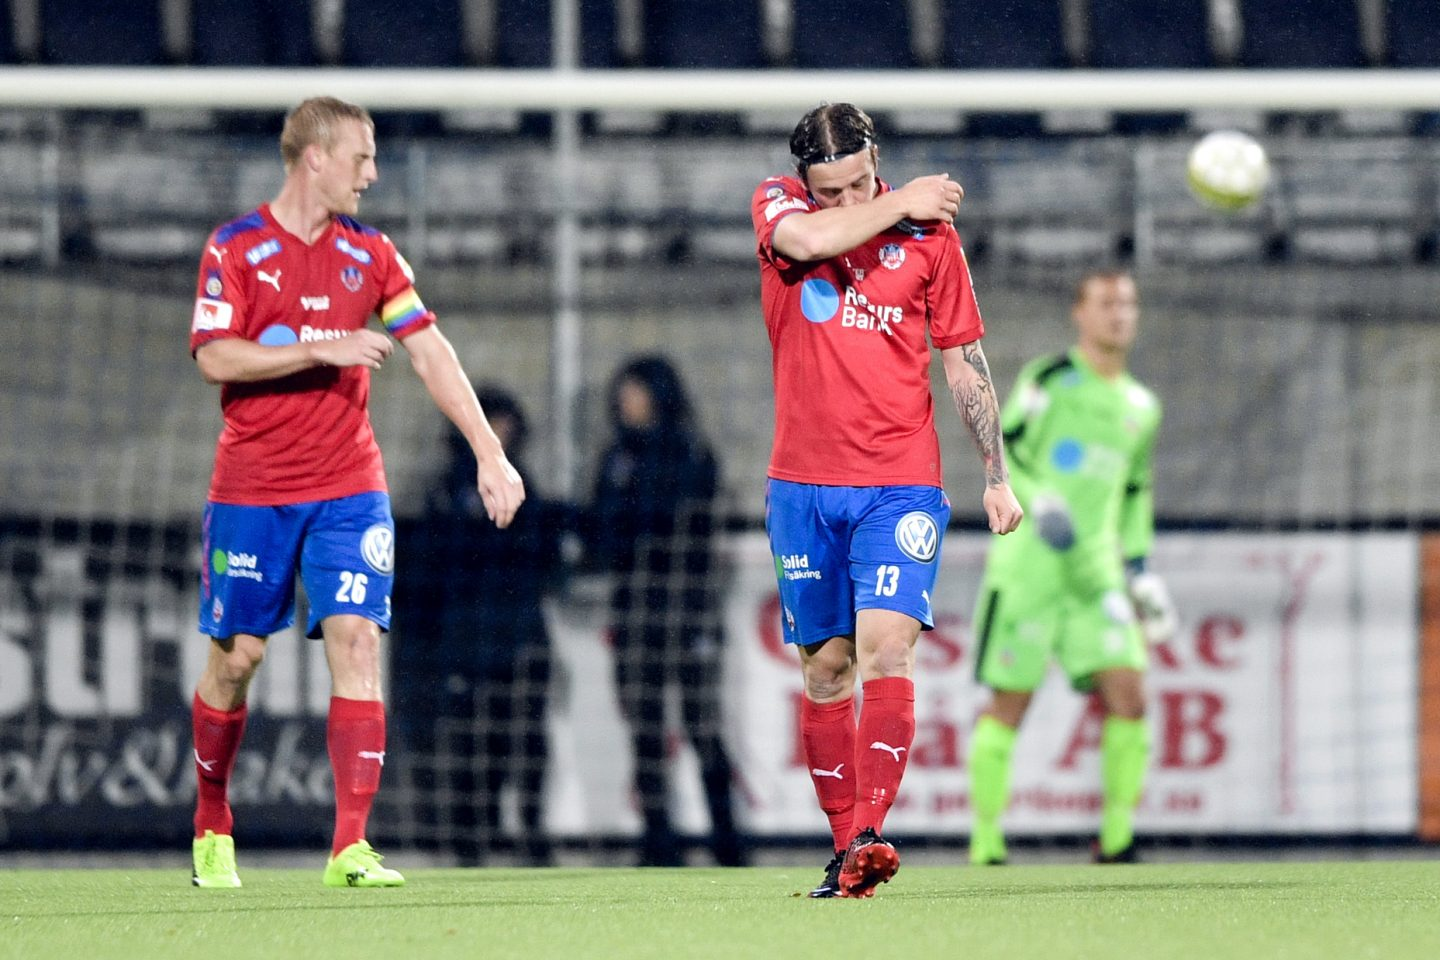 Photo of HIF kallblodsbromsar – men har en sista chans